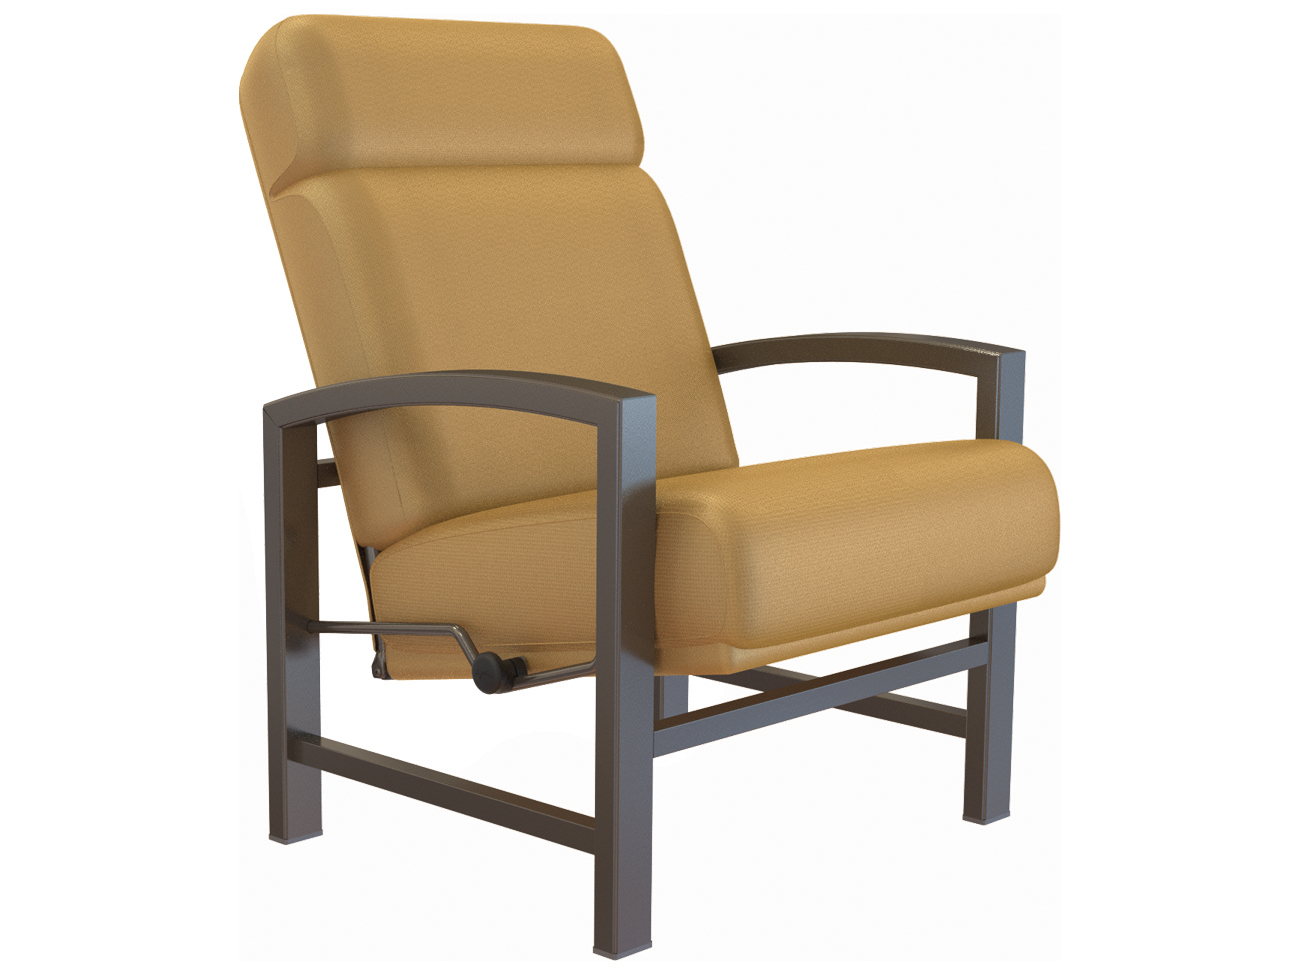 Tropitone Lakeside Urcomfort Lounge Chair Replacement